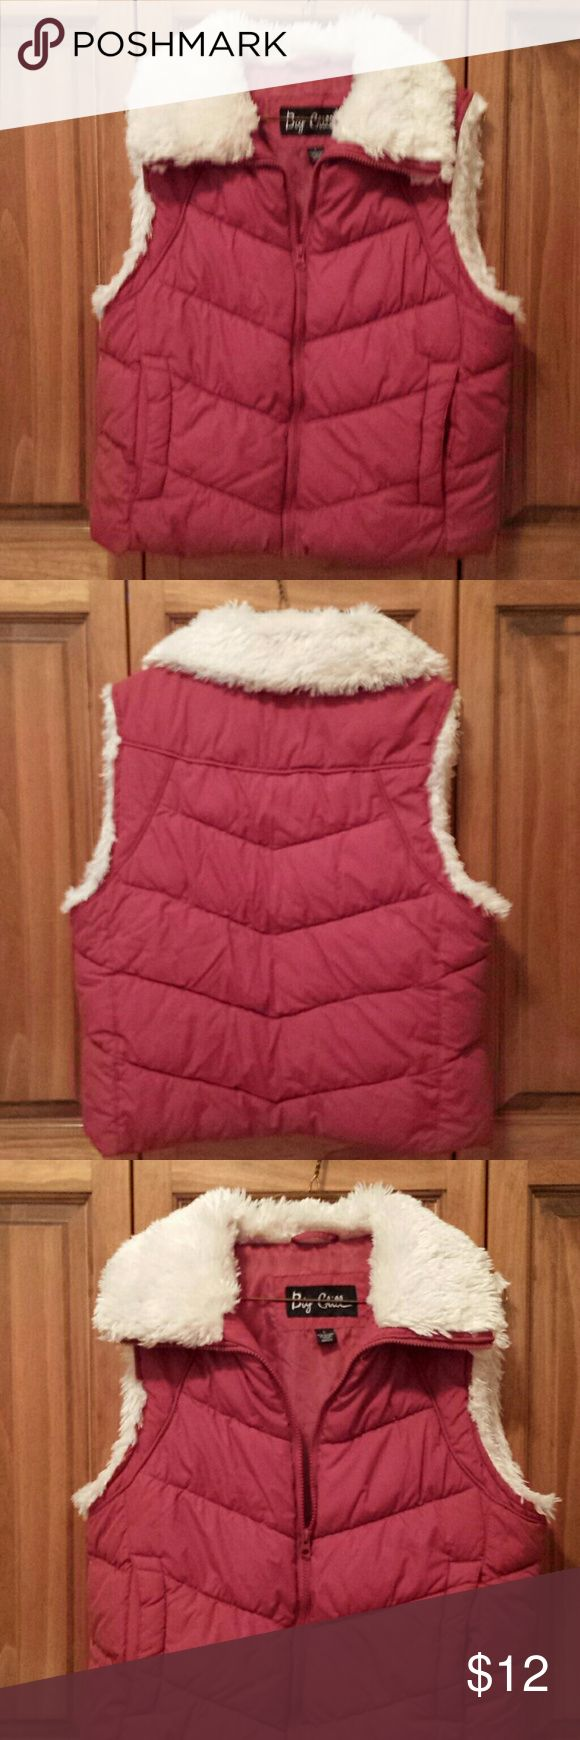 Womens Puffer Vest Good used condition.  Gently worn puffer Vest in a deep burnt orange color . Fur collar and sleeve edges are trimmed in a cream color. Zip up front with 2 pockets. Big Chill Jackets & Coats Puffers